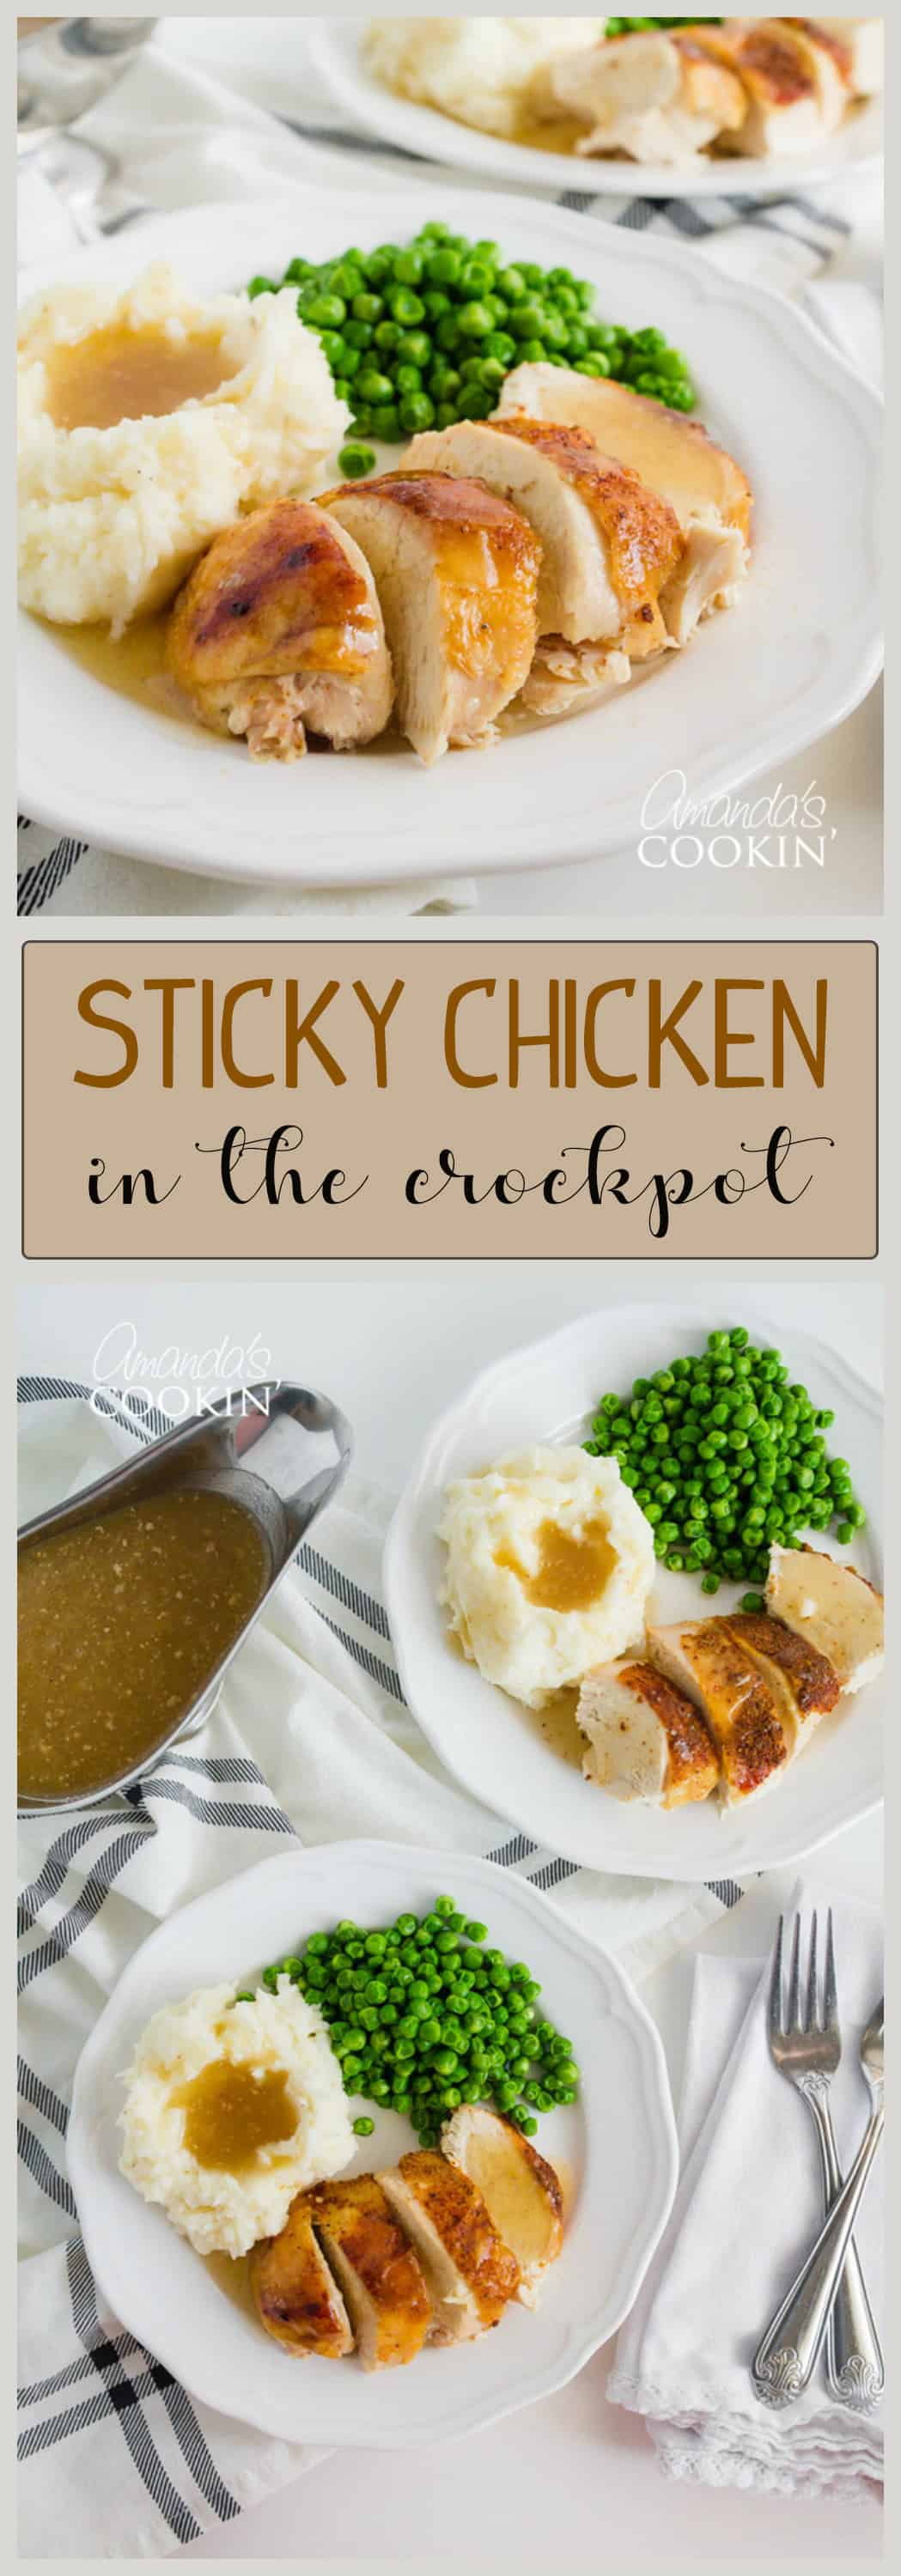 This crockpot chicken recipe is our family's favorite. We make good use of our slow cooker with this spice rubbed sticky chicken at least once a month.